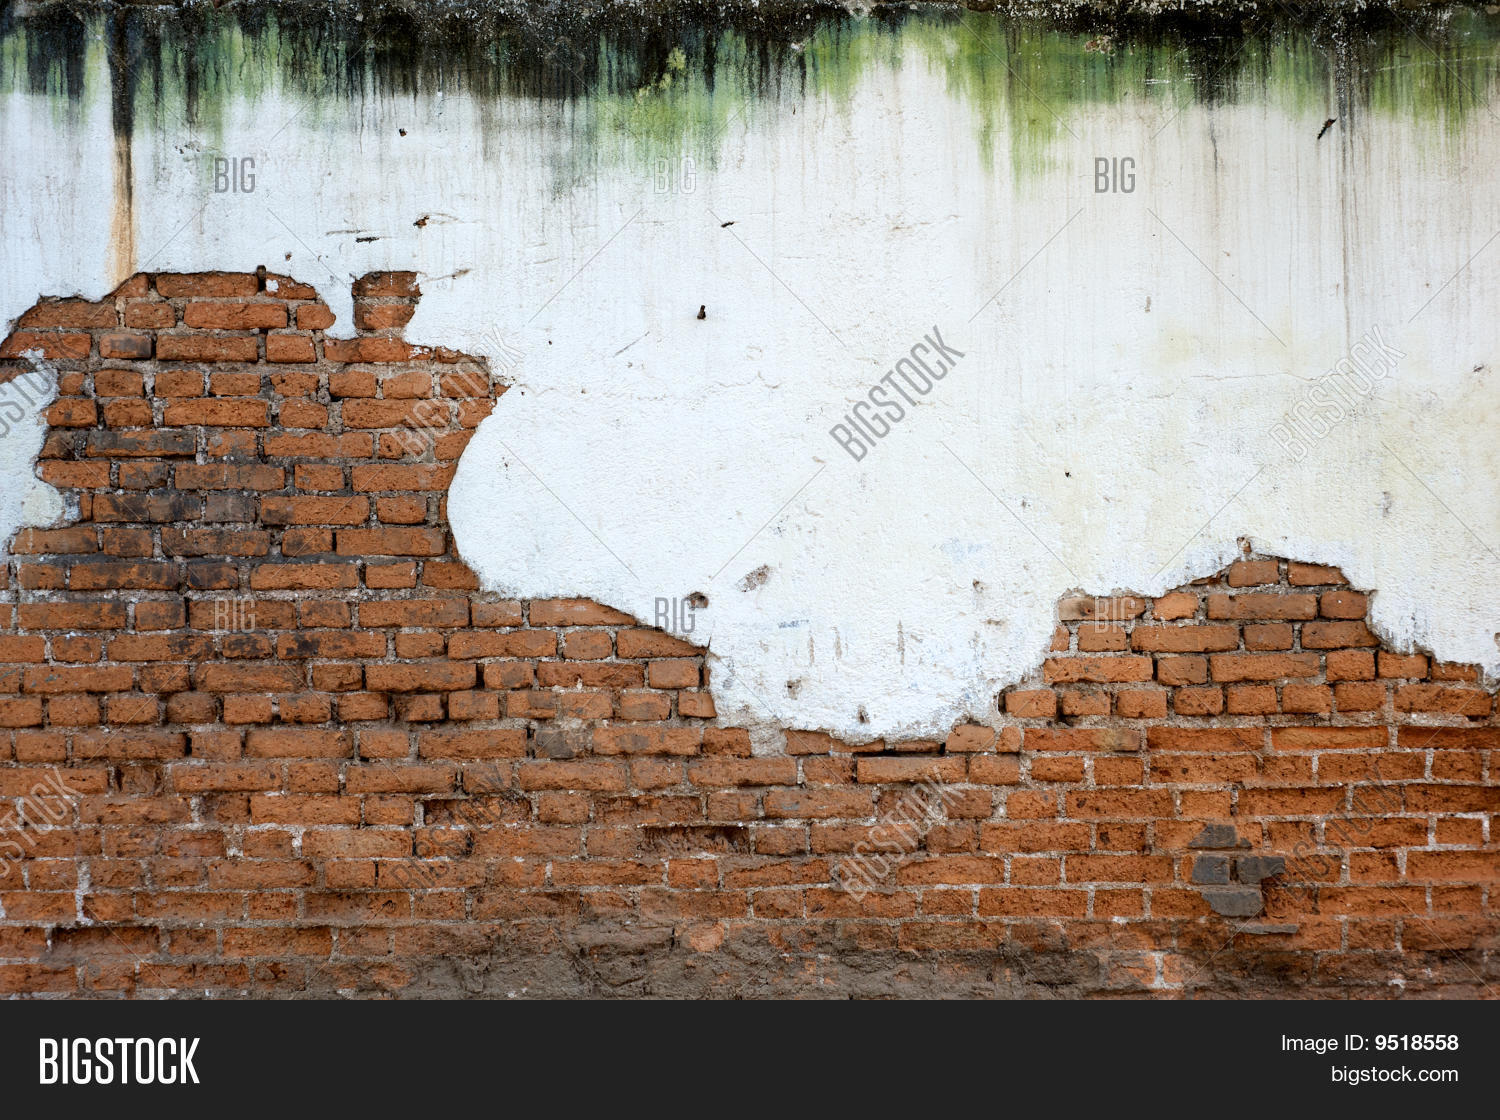 Stained white plaster exposed brick image photo bigstock for White exposed brick wall